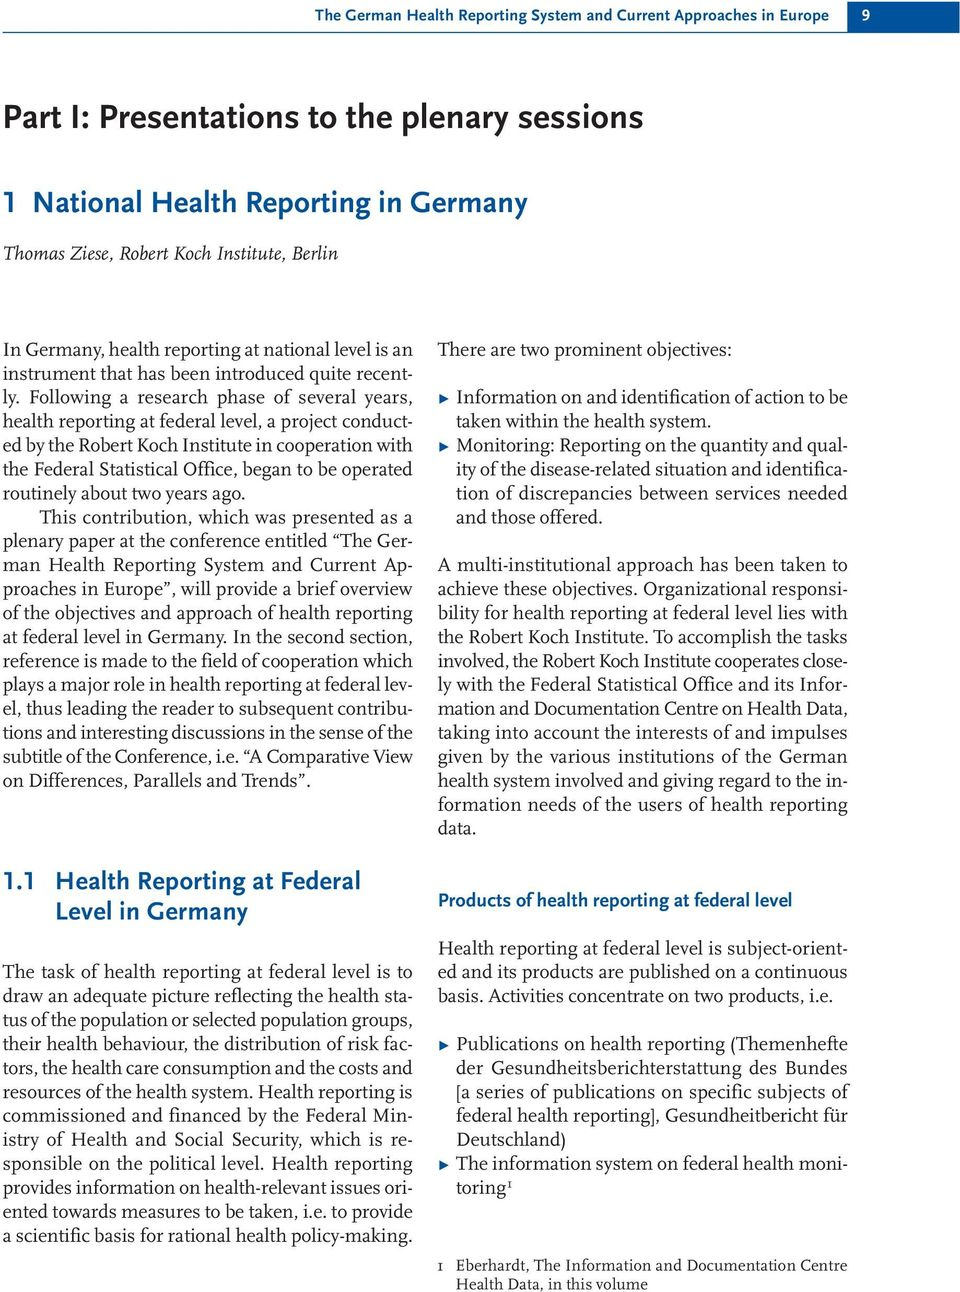 Following a research phase of several years, health reporting at federal level, a project conducted by the Robert Koch Institute in cooperation with the Federal Statistical Office, began to be